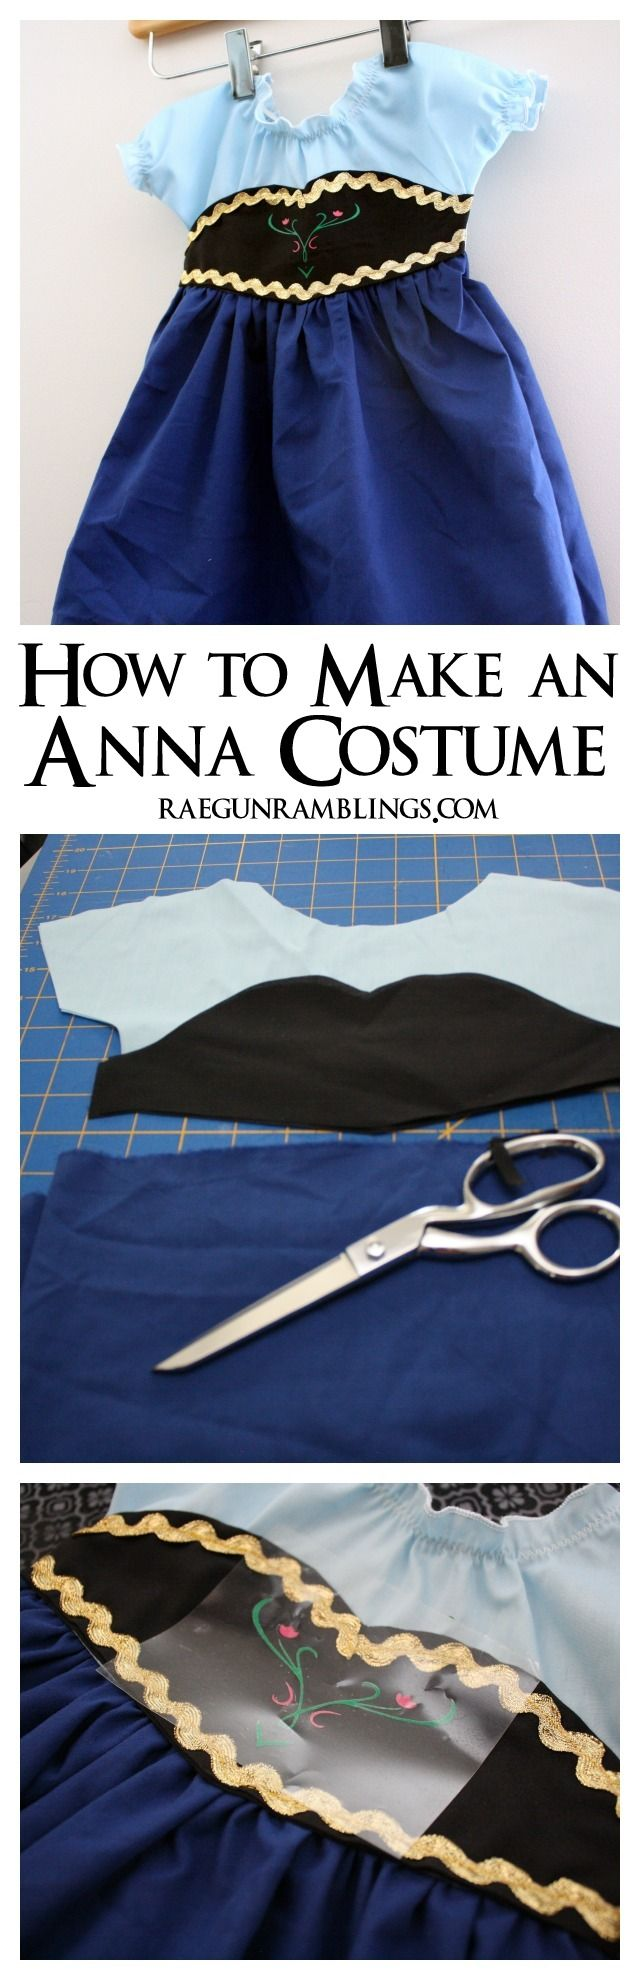 DIY Frozen Anna Costume Tutorial - Rae Gun Ramblings